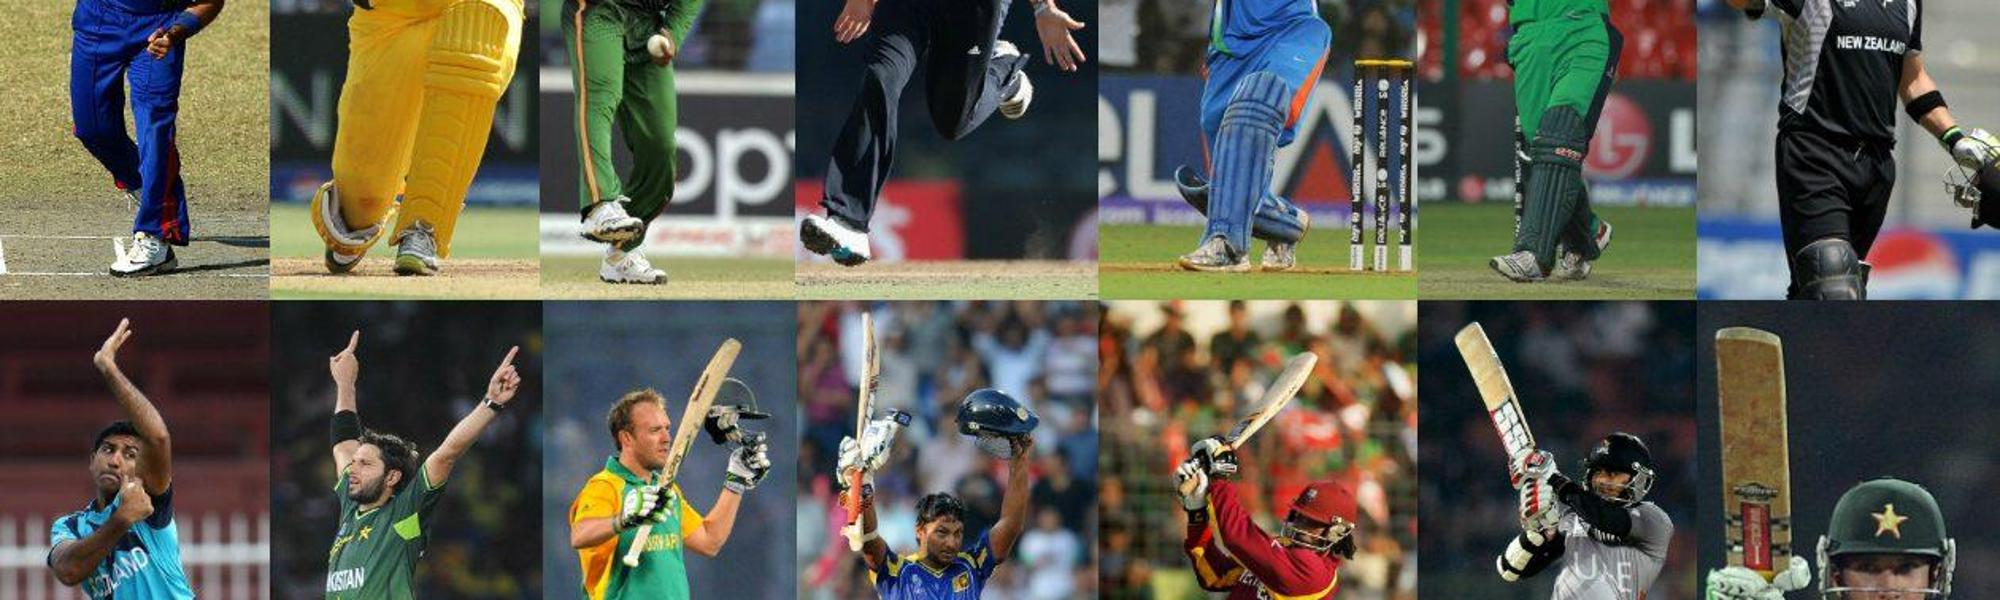 Icc Launches Official Fantasy League For Icc Cricket World